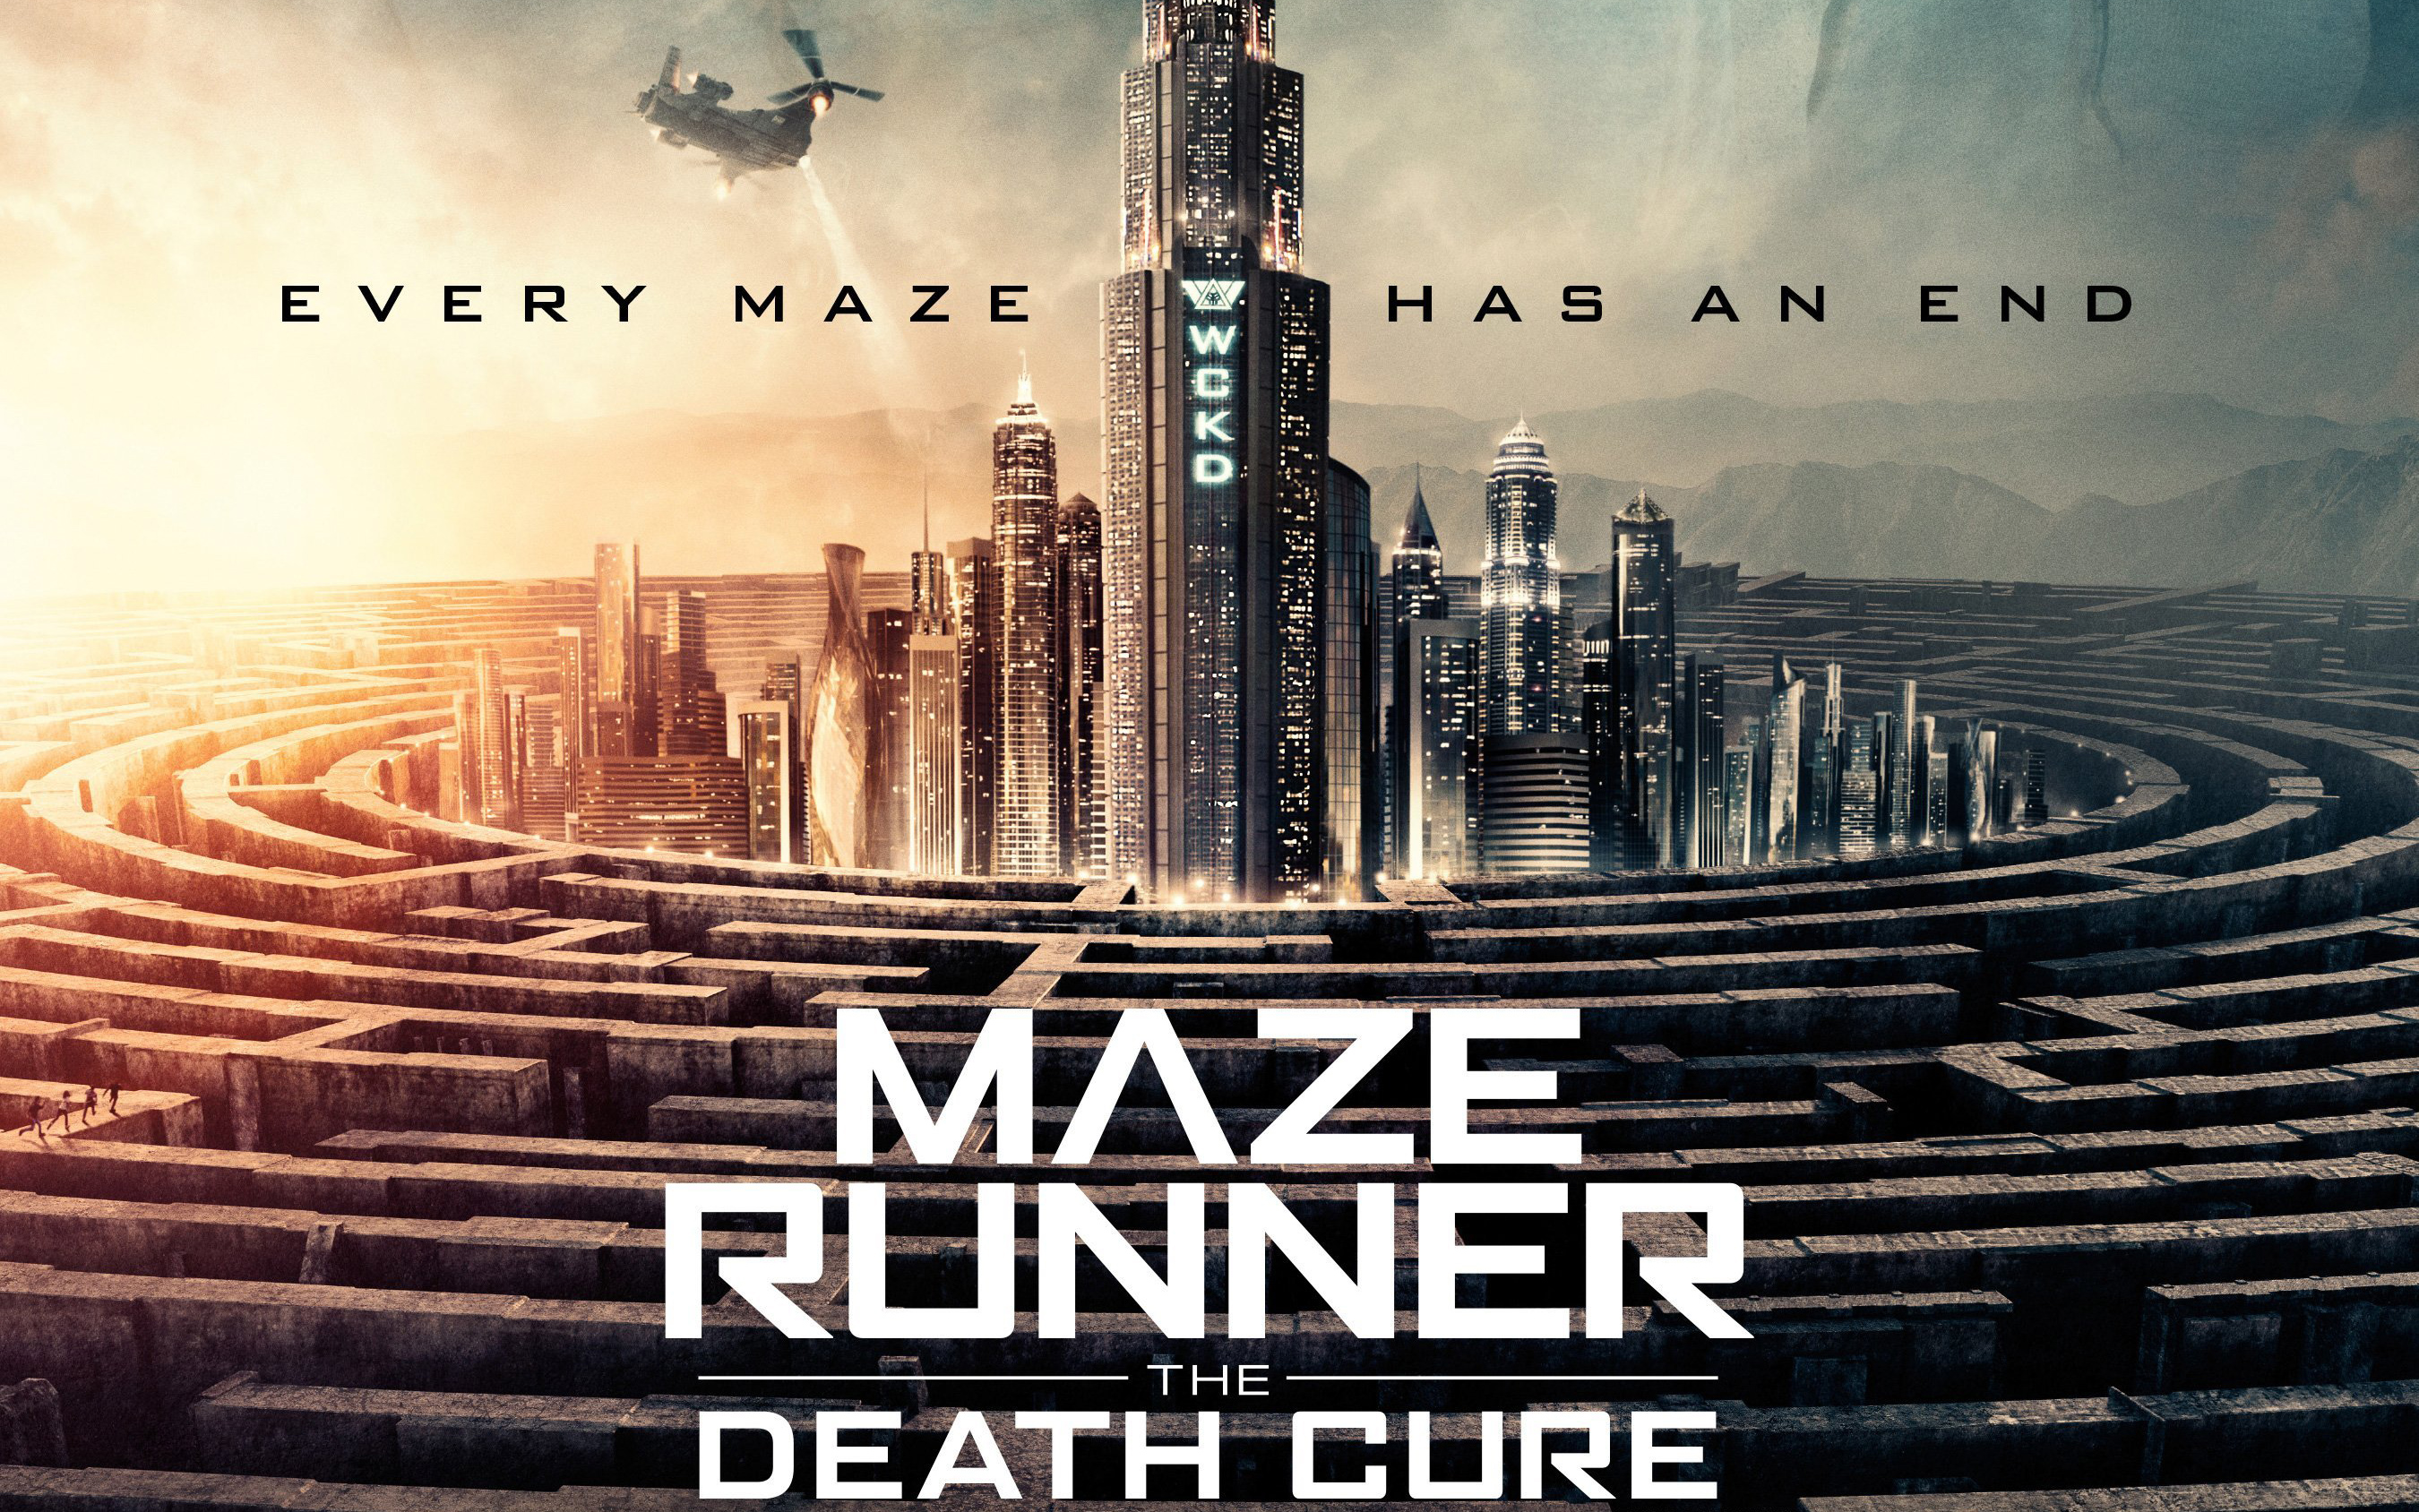 Maze Runner The Death Cure a Official Movie Poster